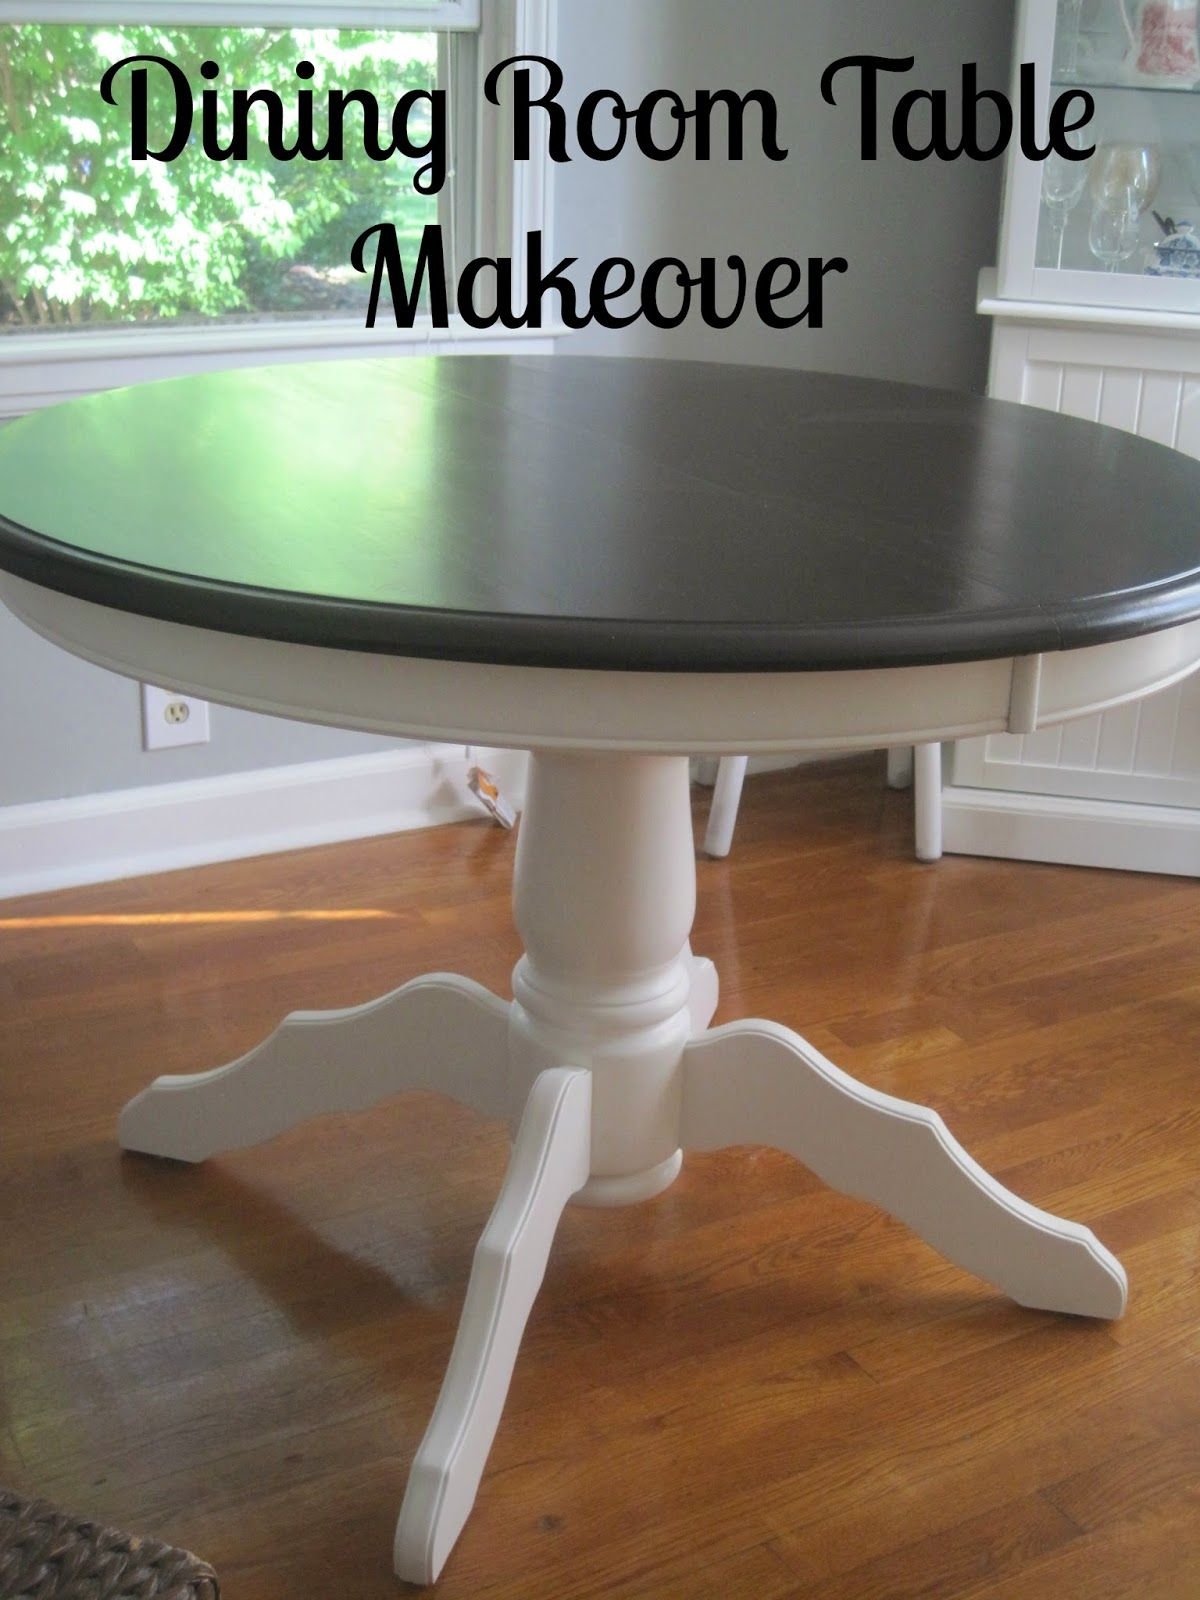 Painted round dining table  Beautiful Tone on tone round dining table I would love one like